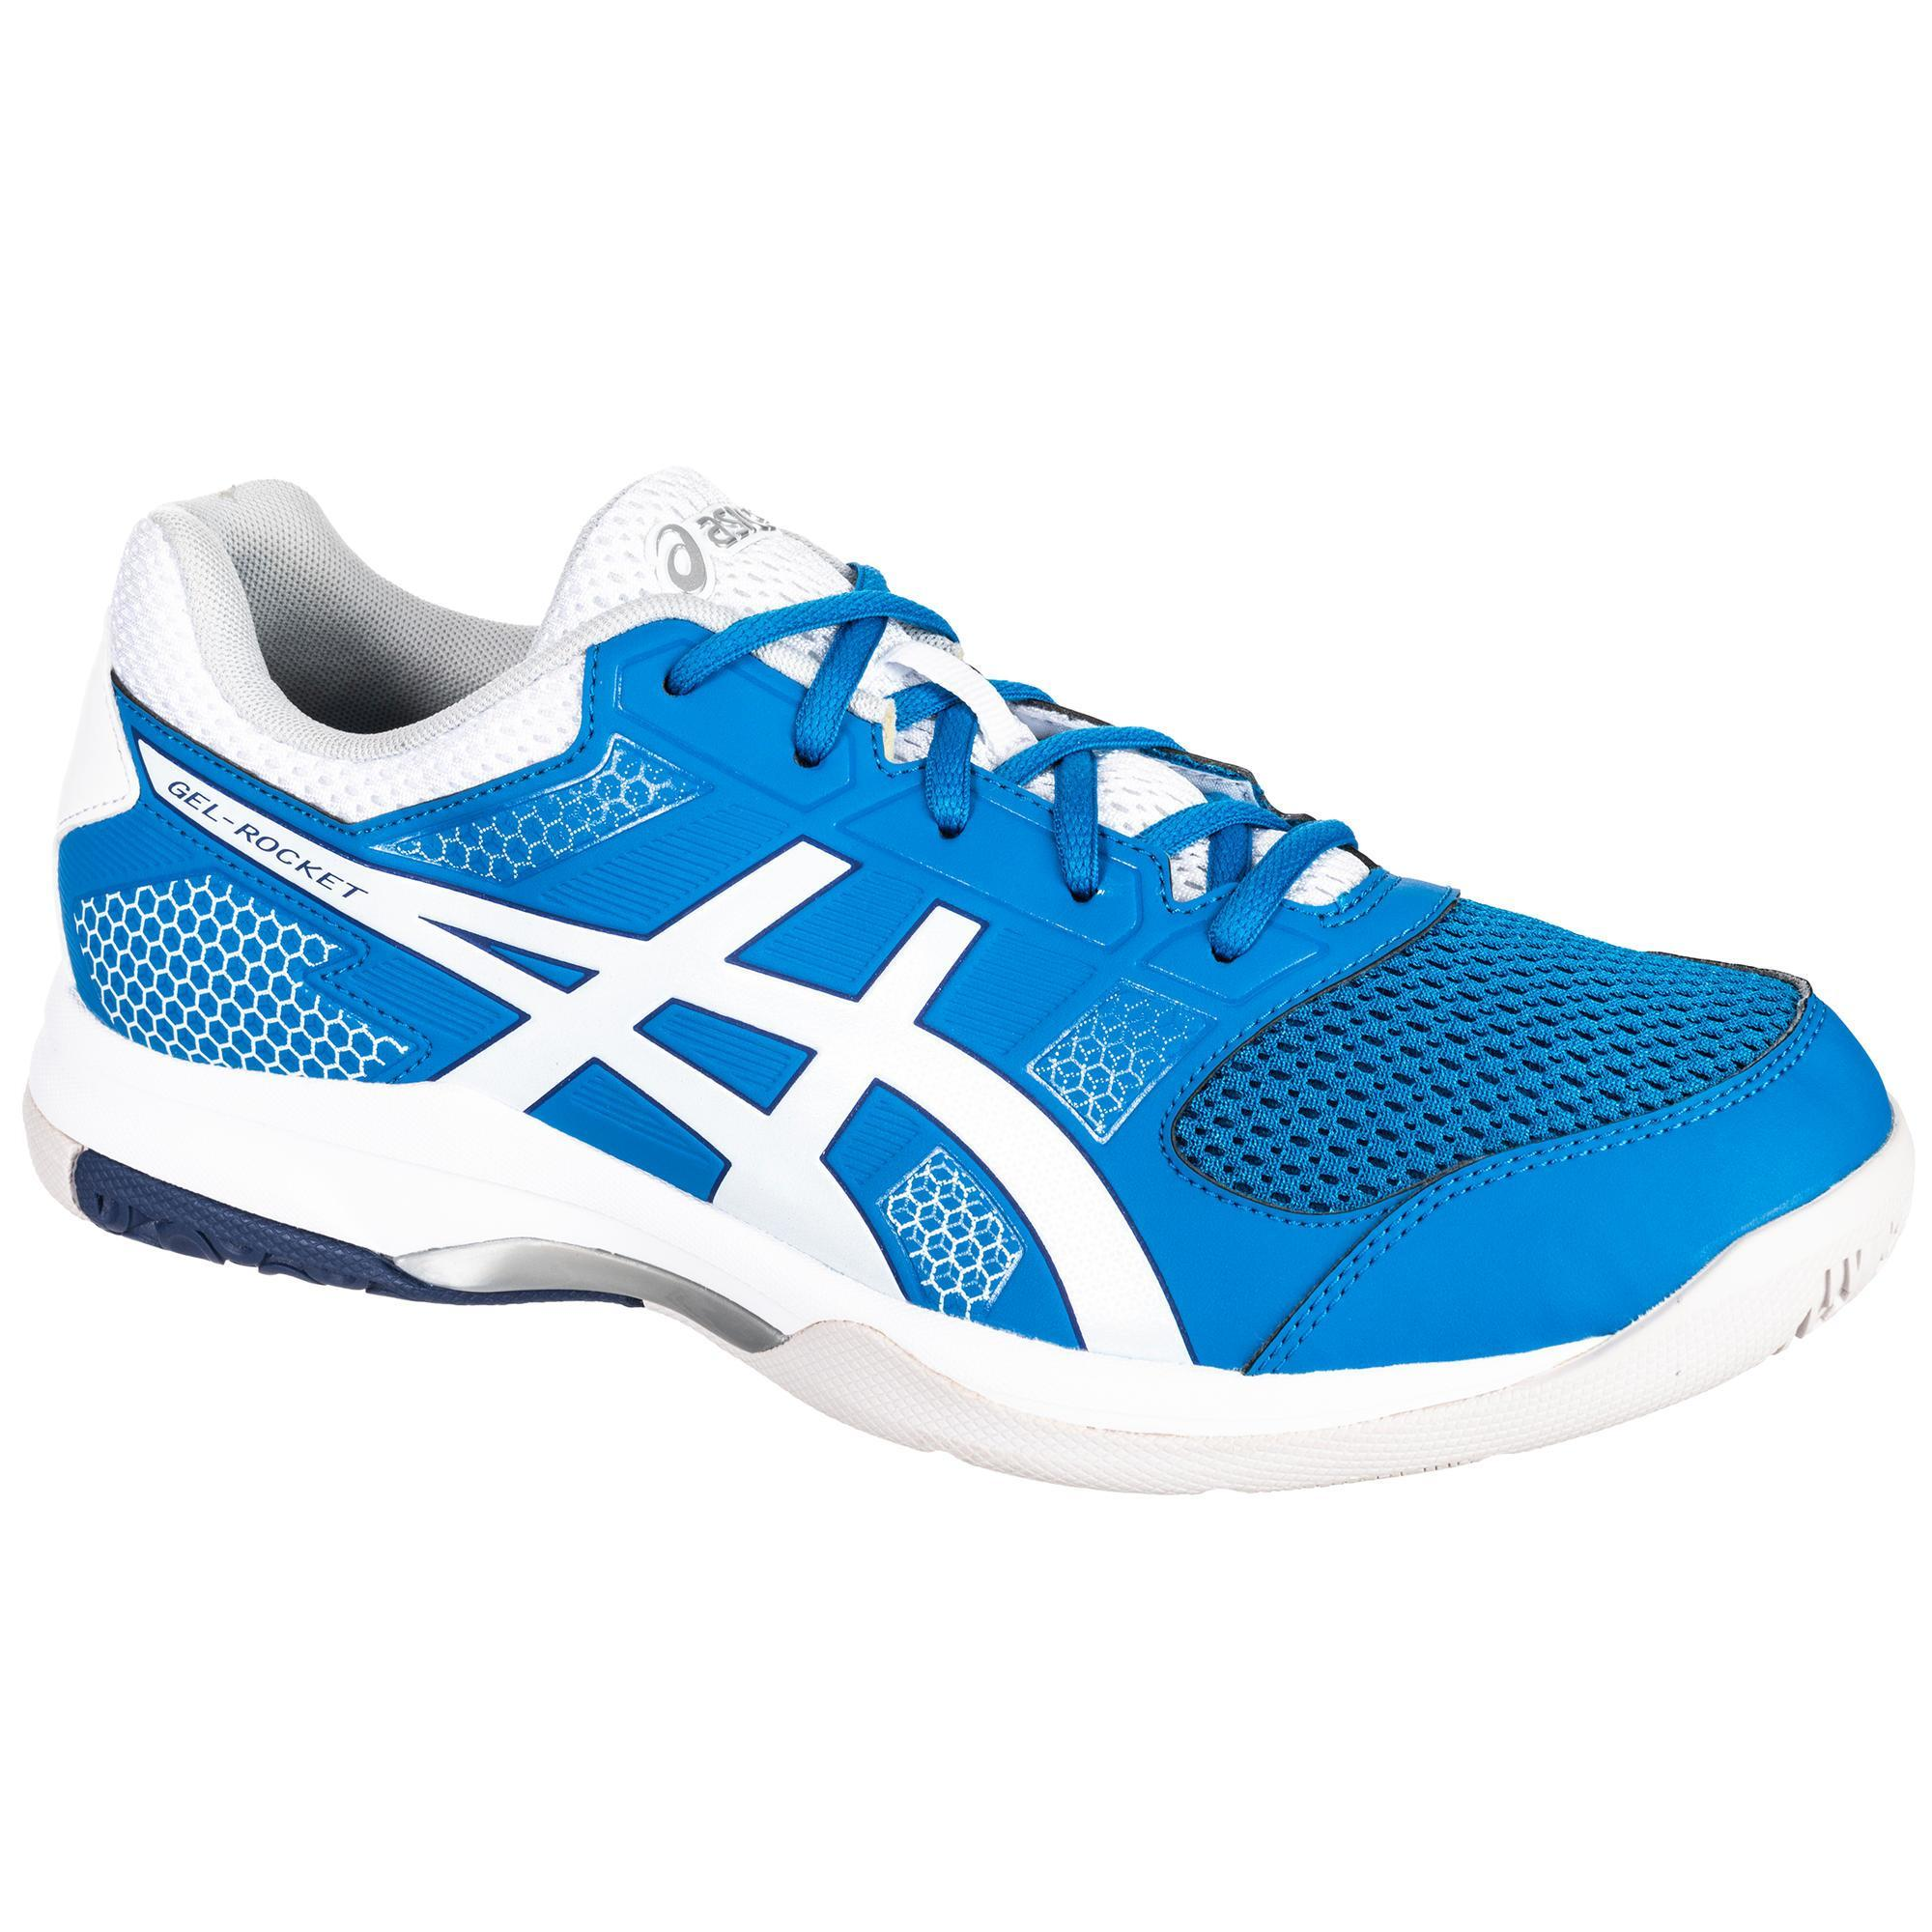 newest new high low price Chaussure squash - Homme | Decathlon